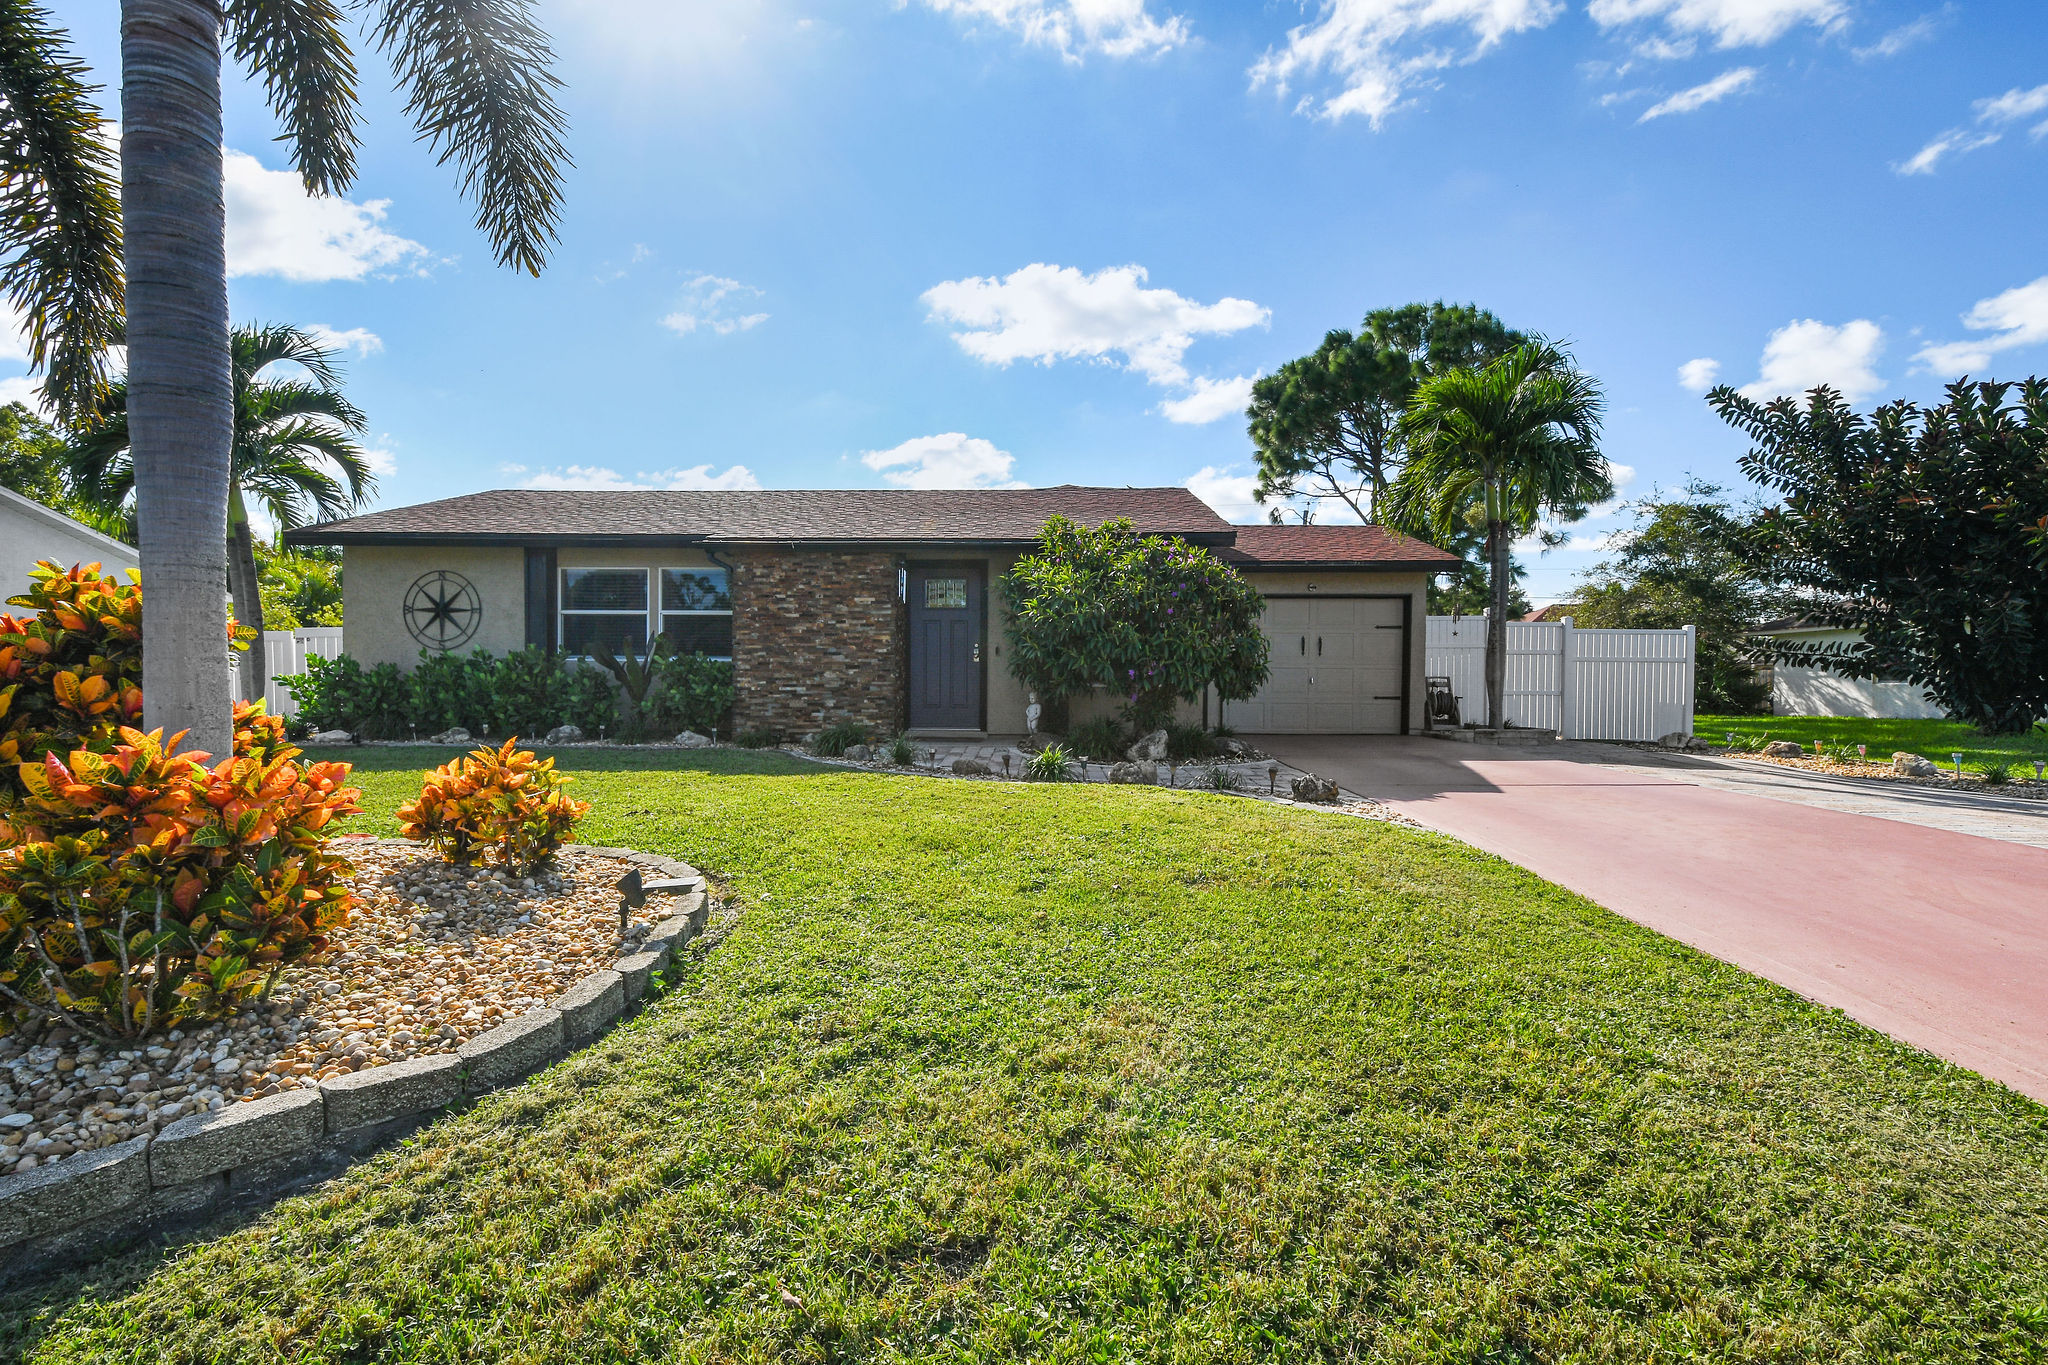 3/2 in Eastern Port St Lucie